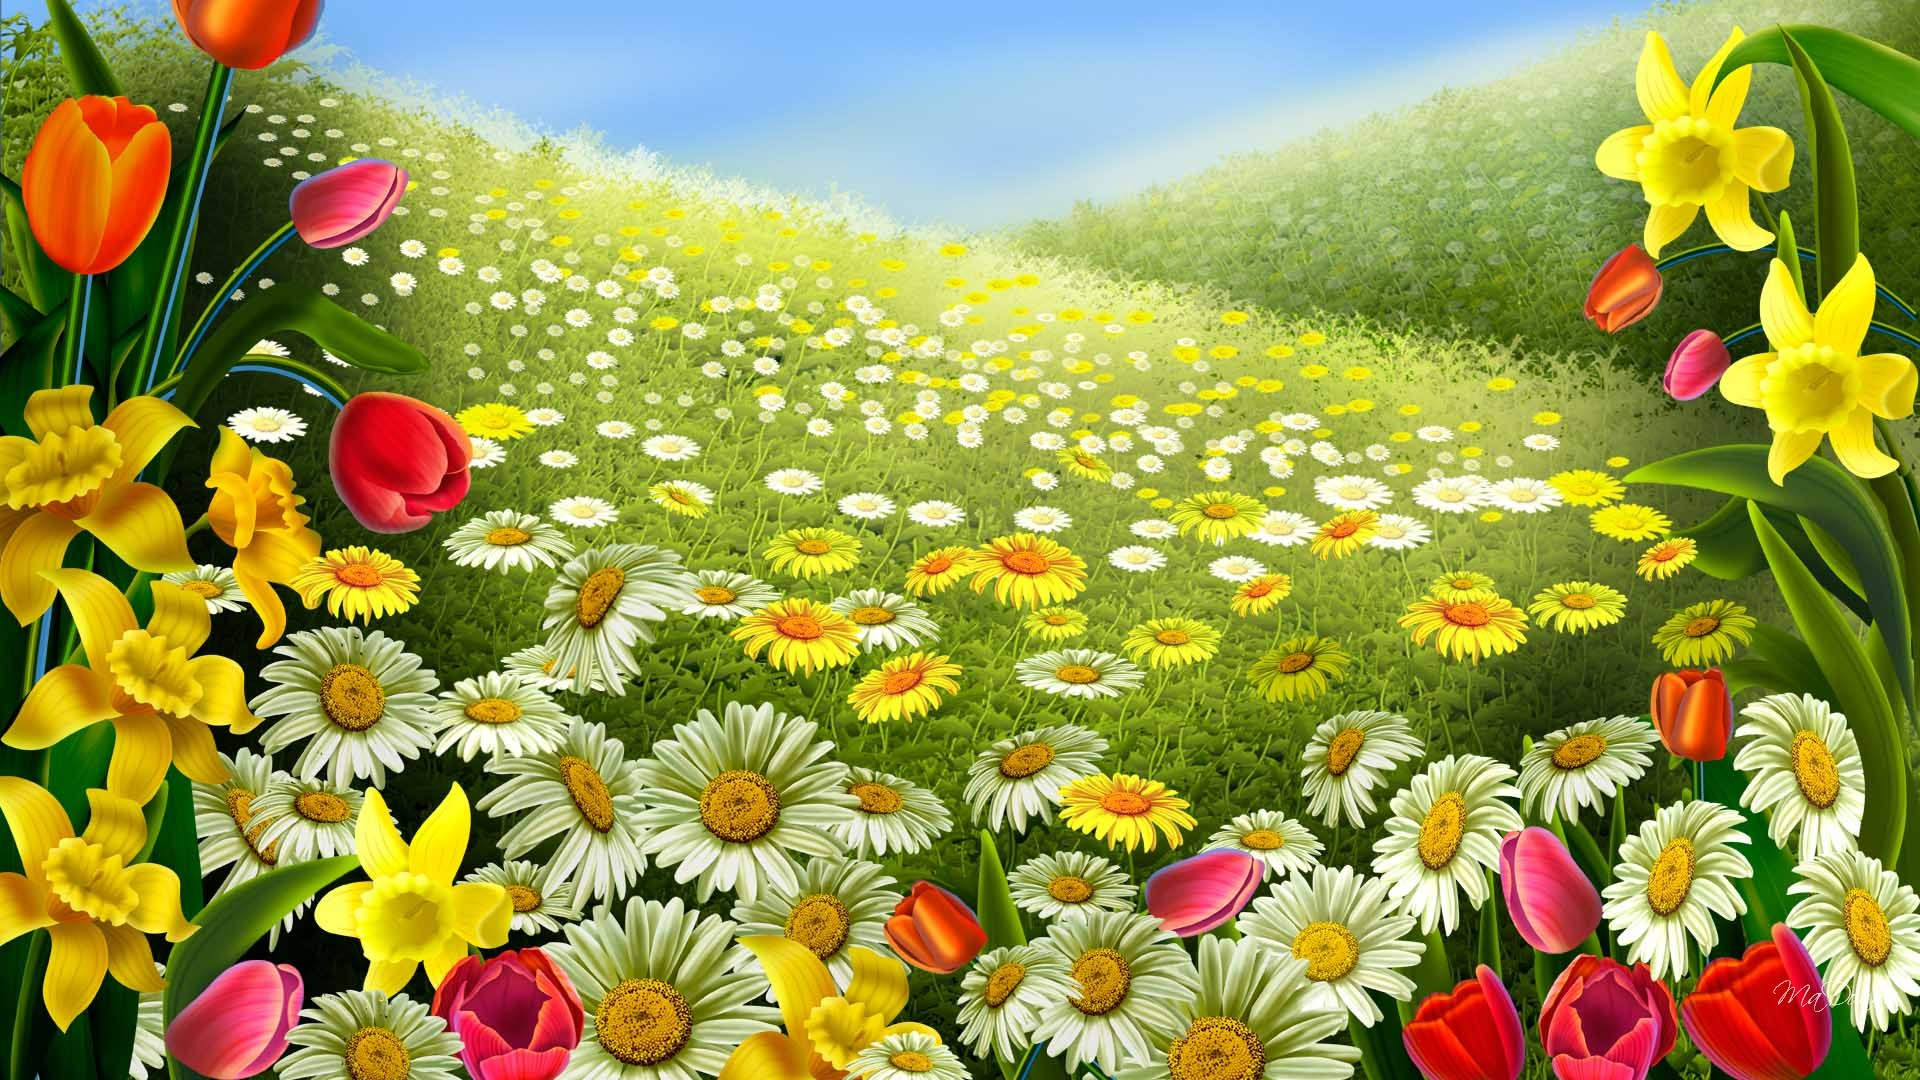 Spring wallpapers HD download Wallpapers Backgrounds Images 1920x1080